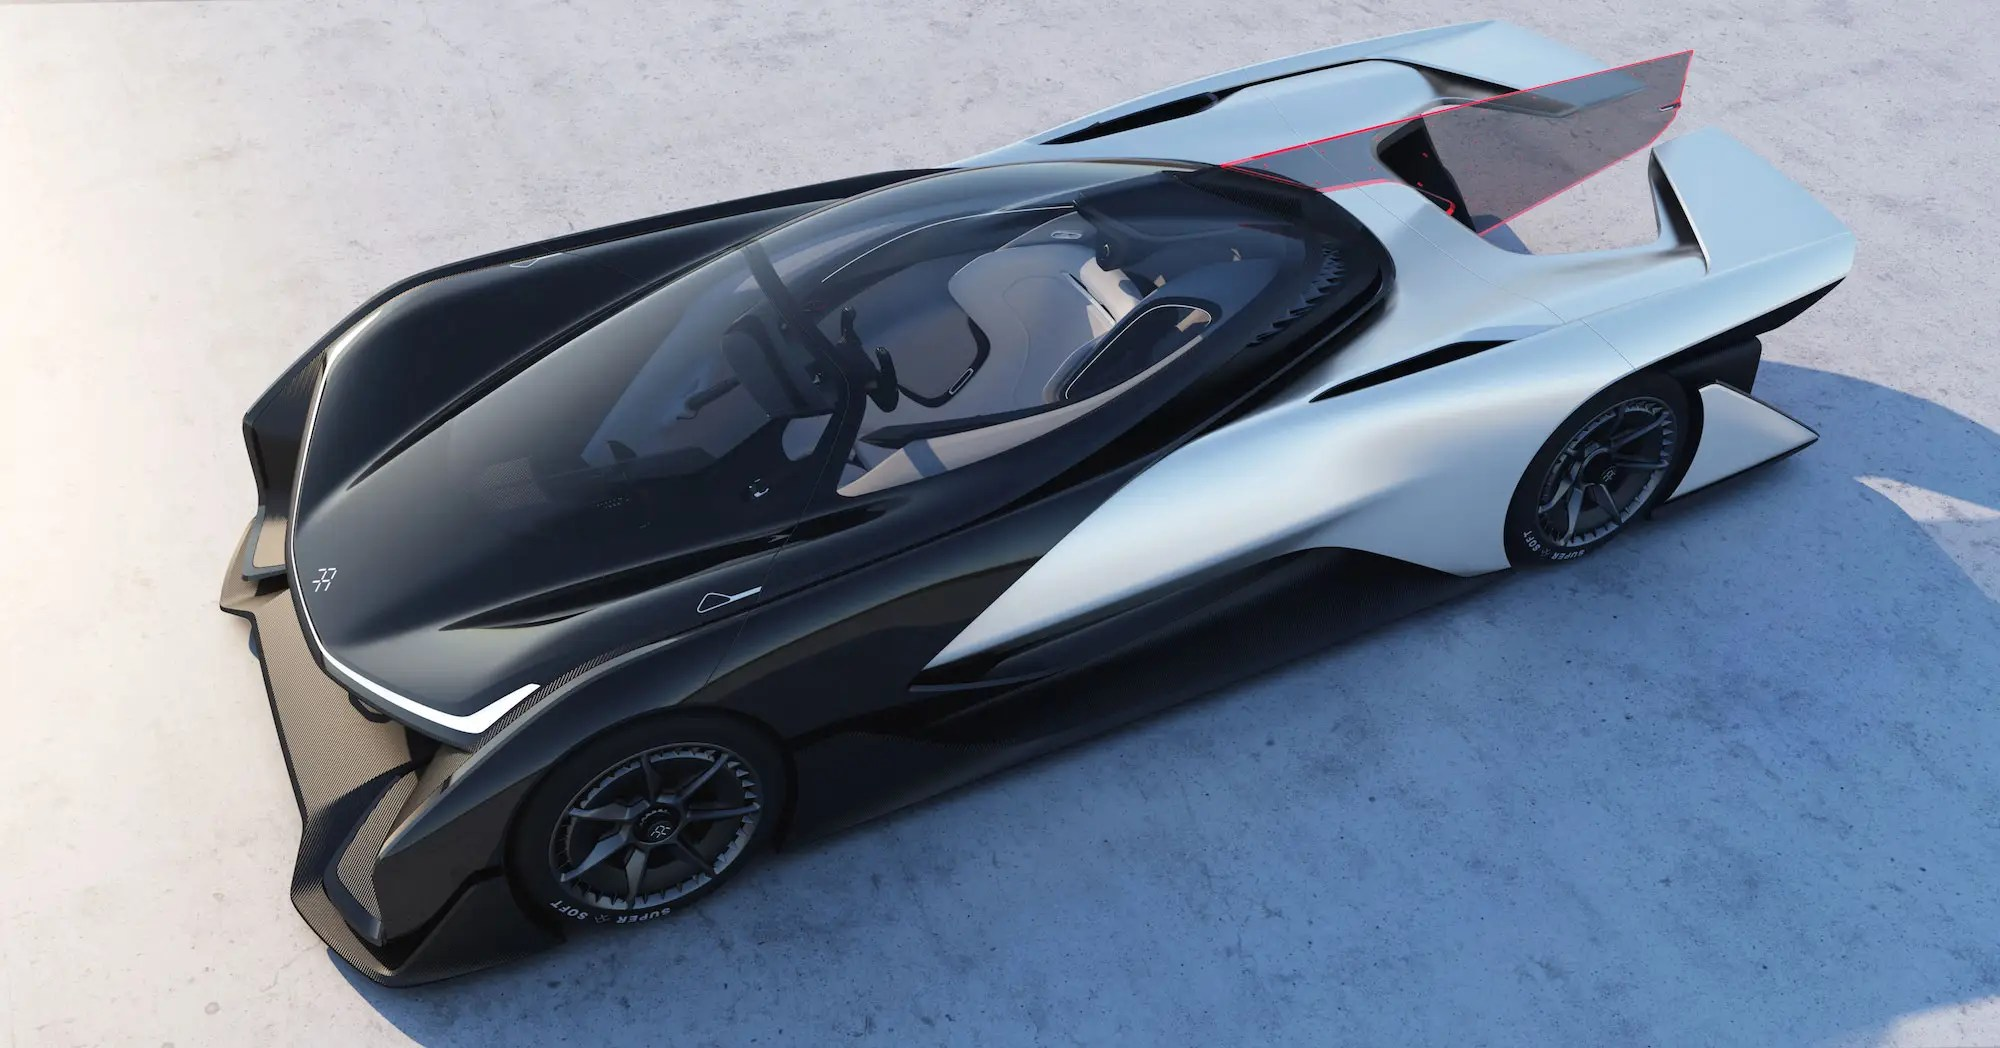 2. The big unveiling to come out of the Consumer Electronics Show was Faraday Future's concept car, the FFZERO1.